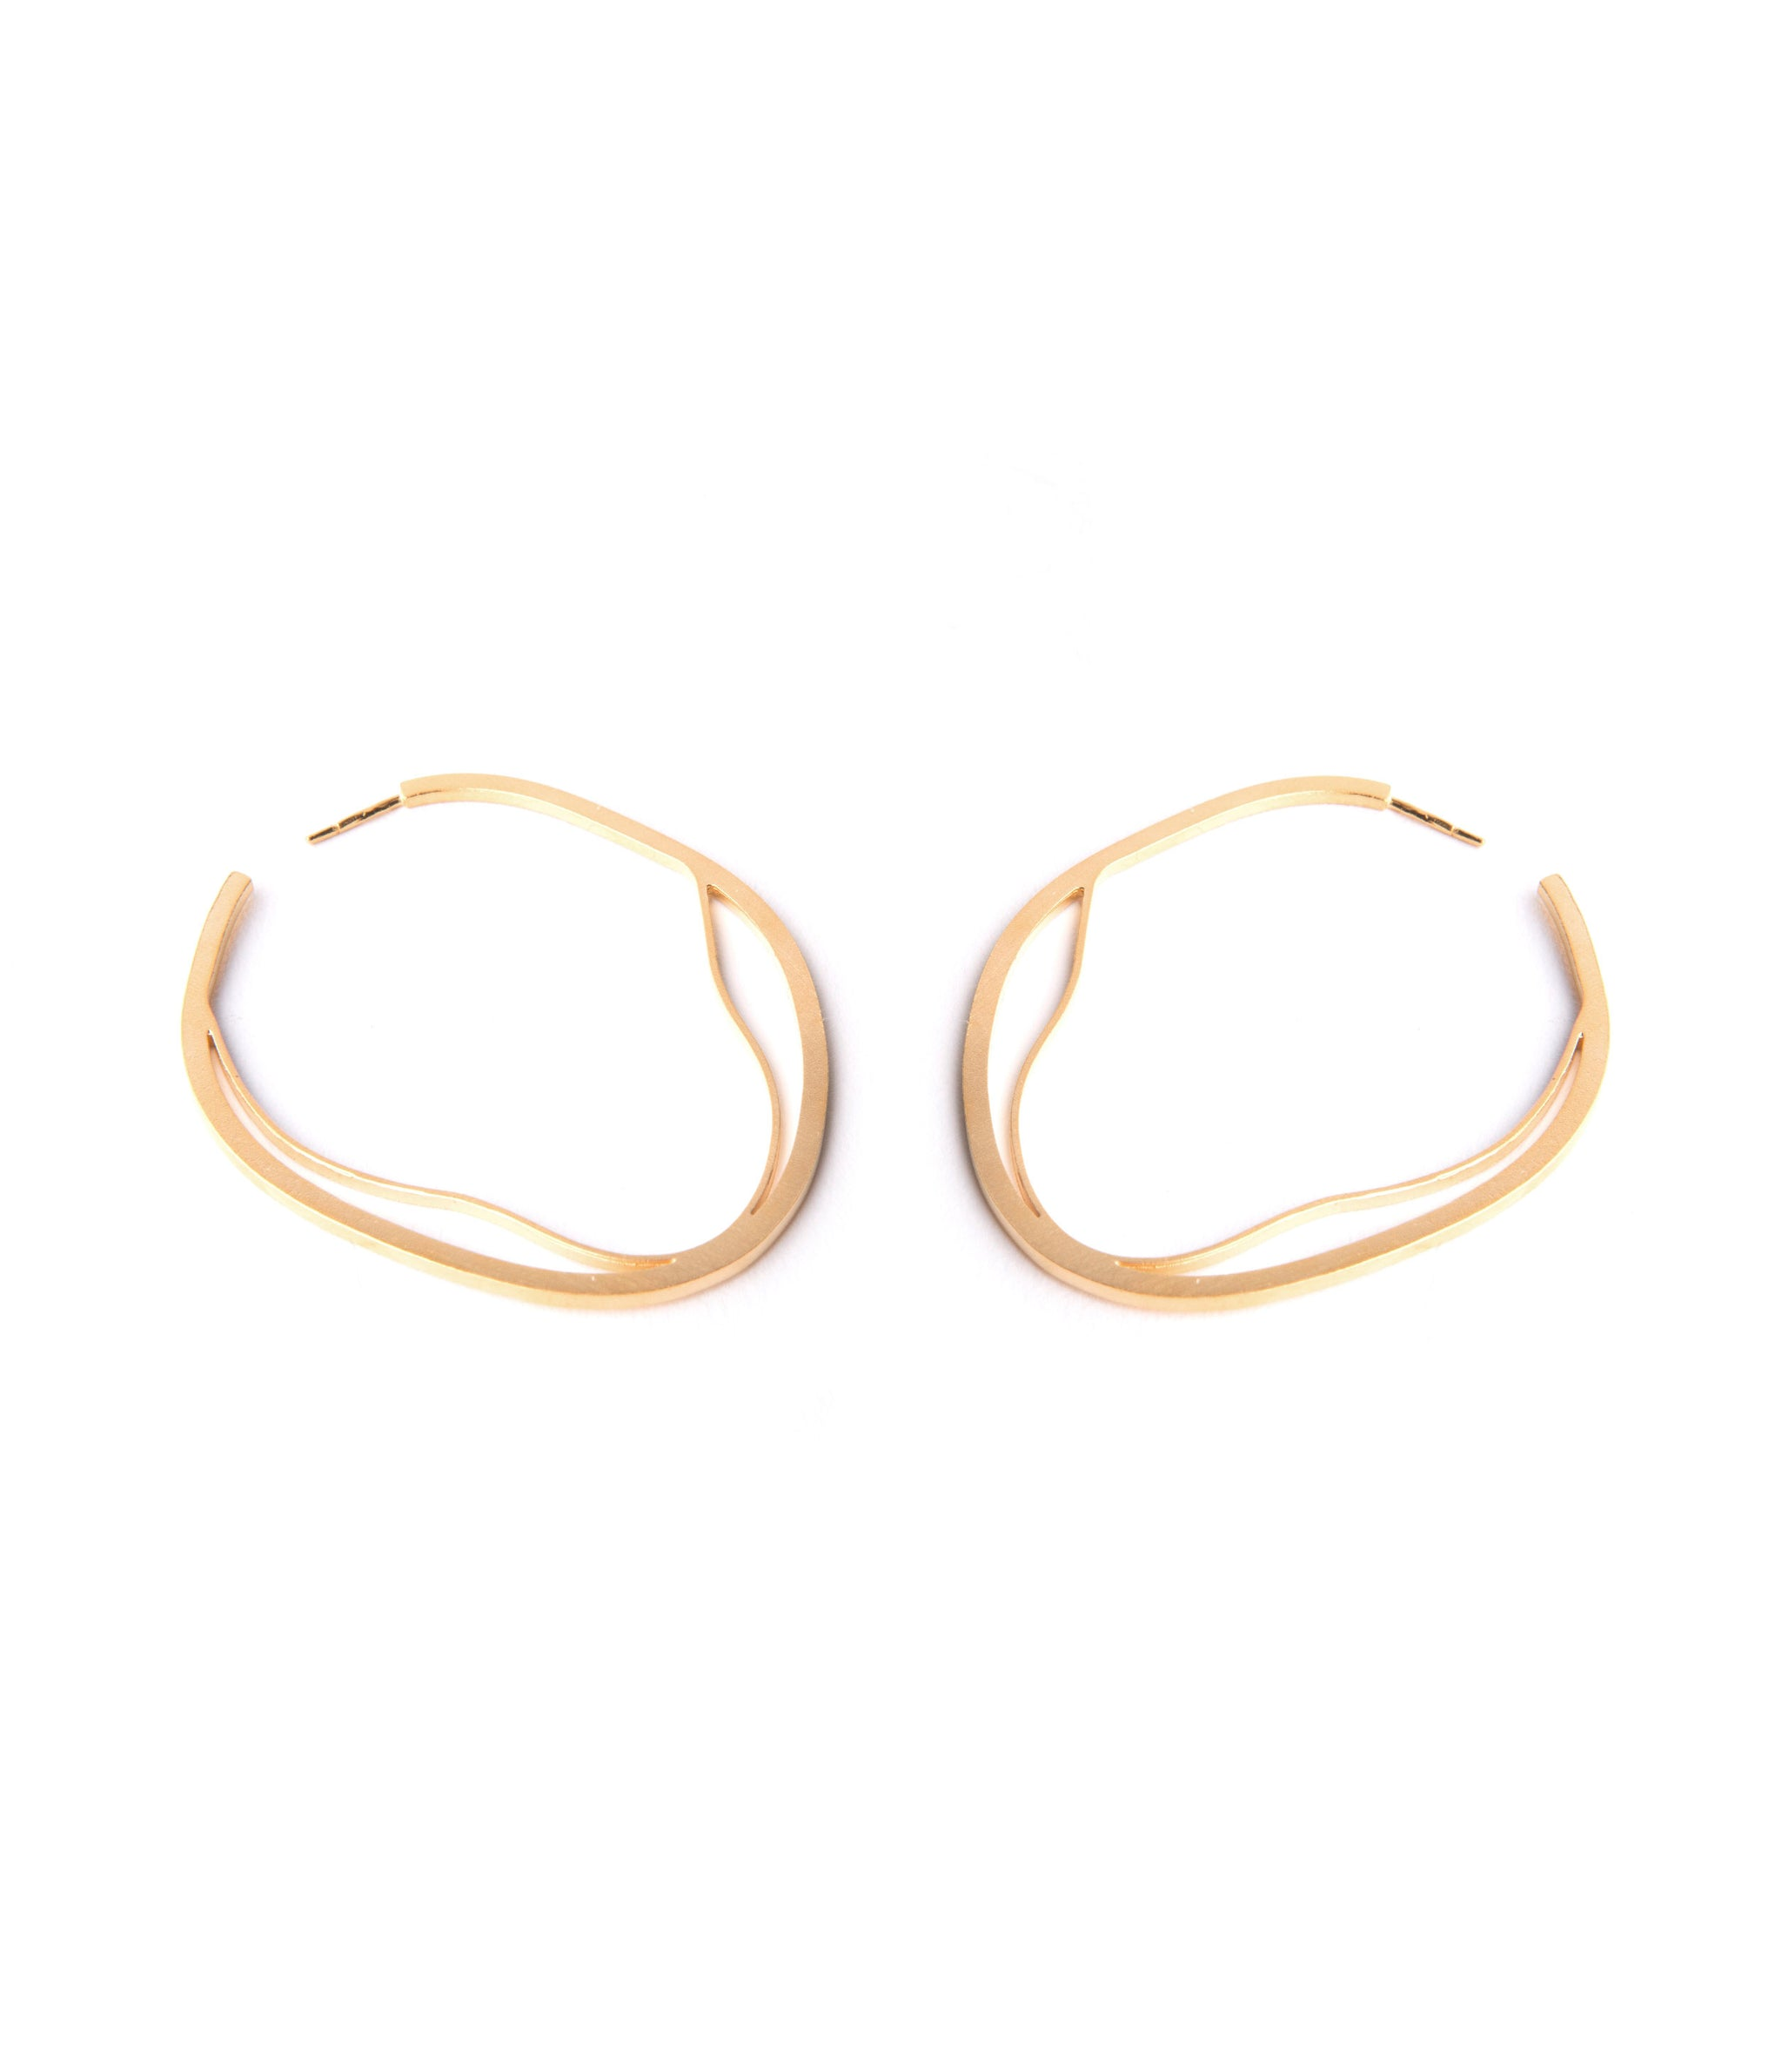 Nova Líneas Earrings Gold Plated